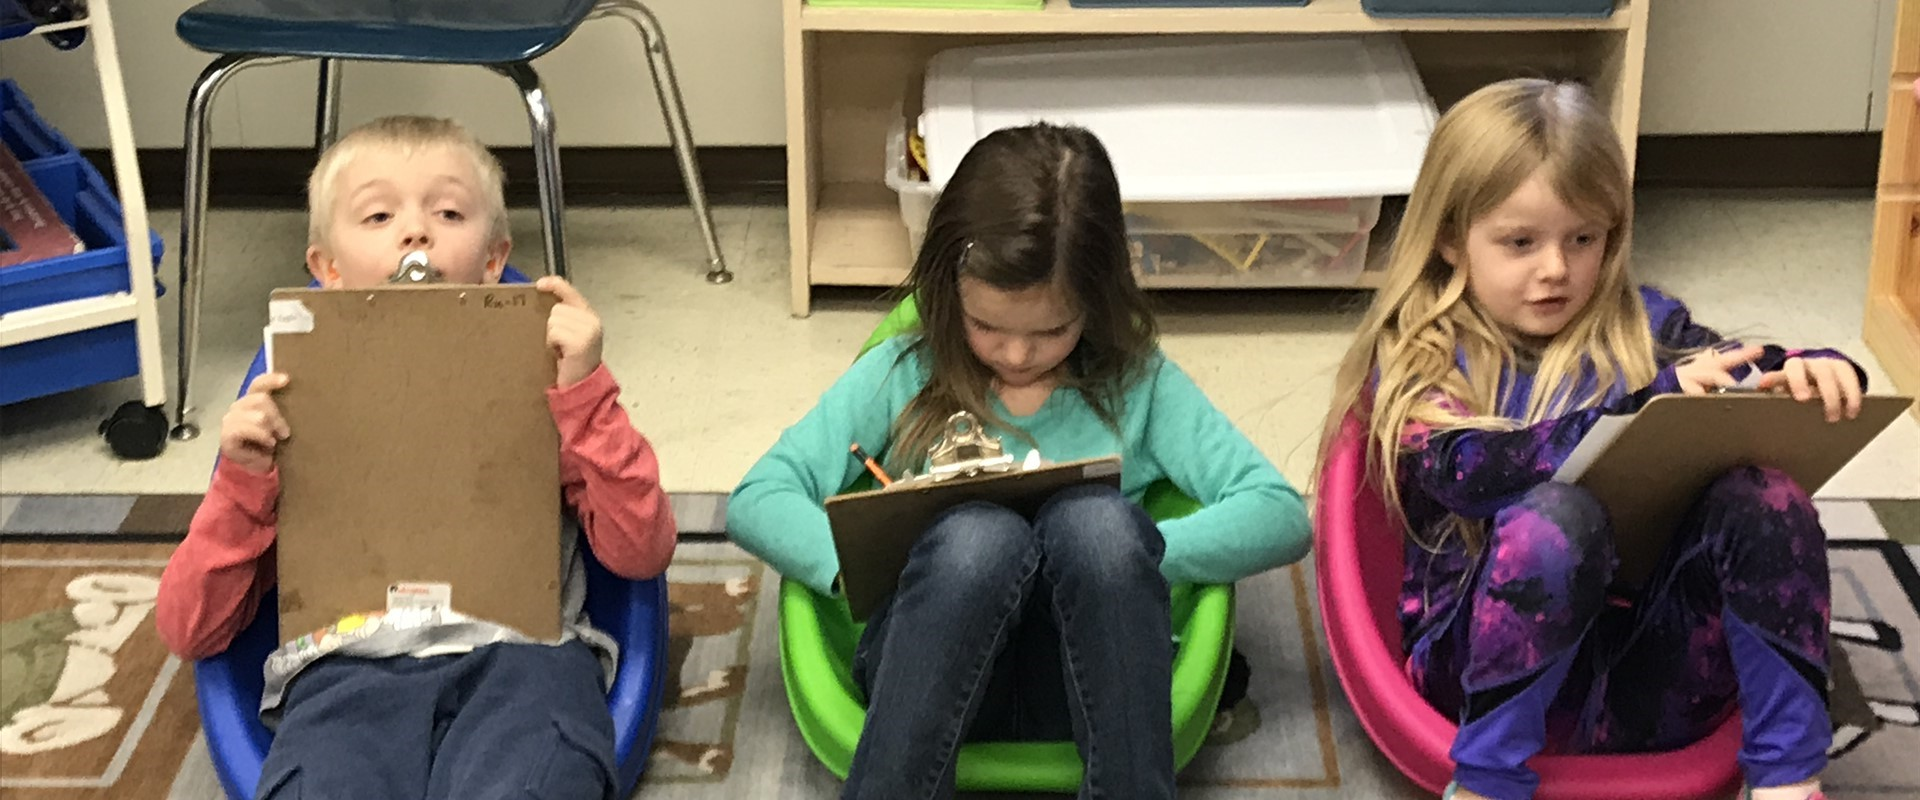 Mrs. Jans's students writing and enjoying new alternative seating.